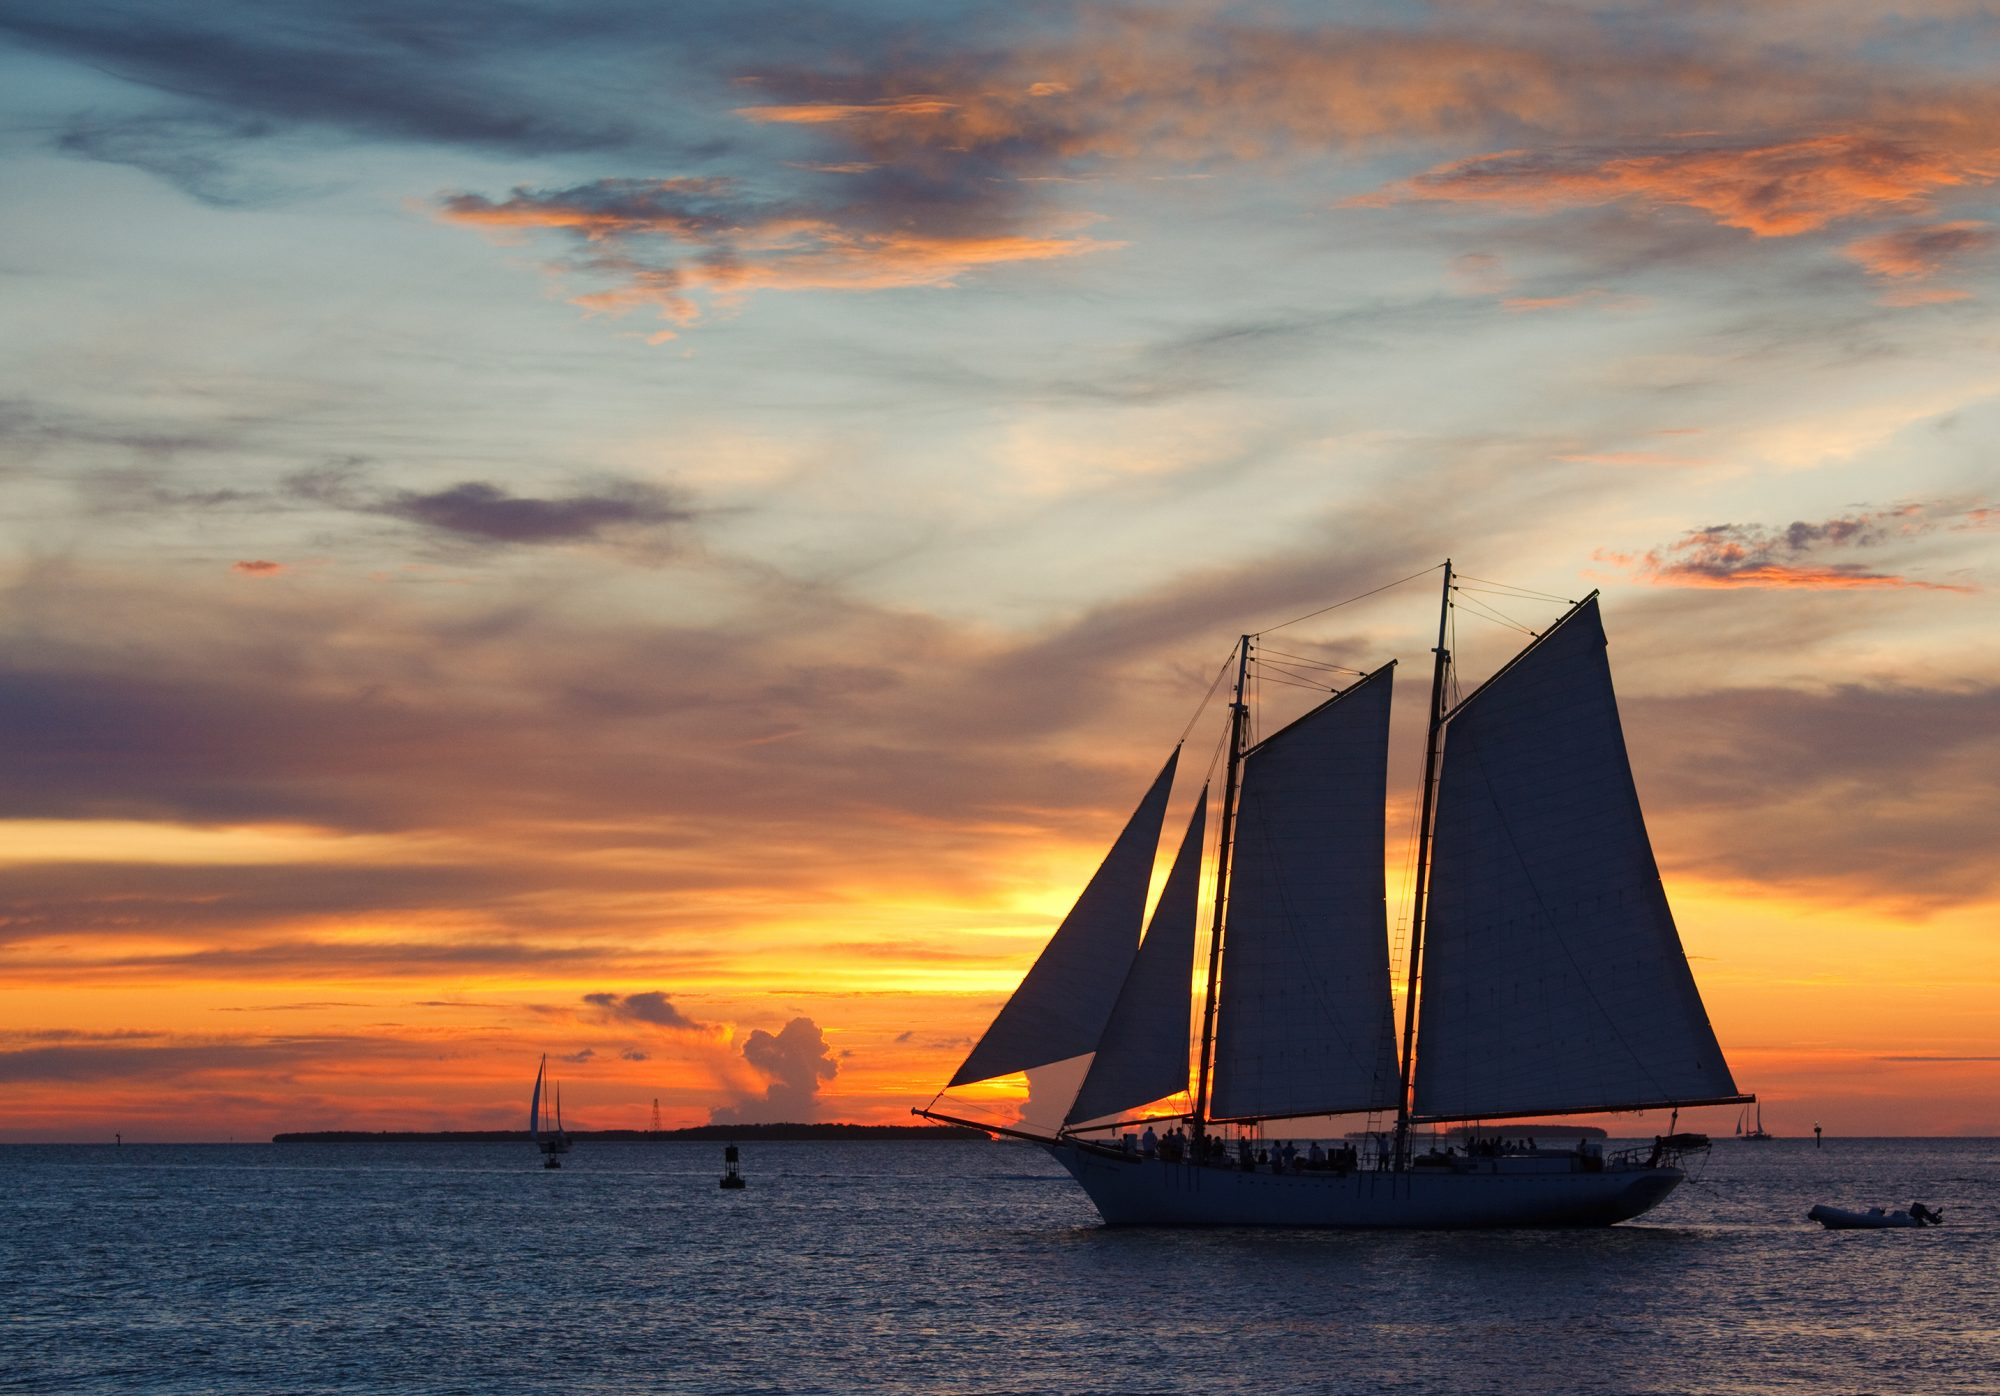 Key West is famous for its dazzling sunsets, so set sail for an evening that's steeped in equal parts tradition and natural beauty. Fury Key West offers a variety of sunset cruise options from romantic champagne-style trips to lively rum and reggae parties. Excursions start at $40 for adults and $20 for kids.